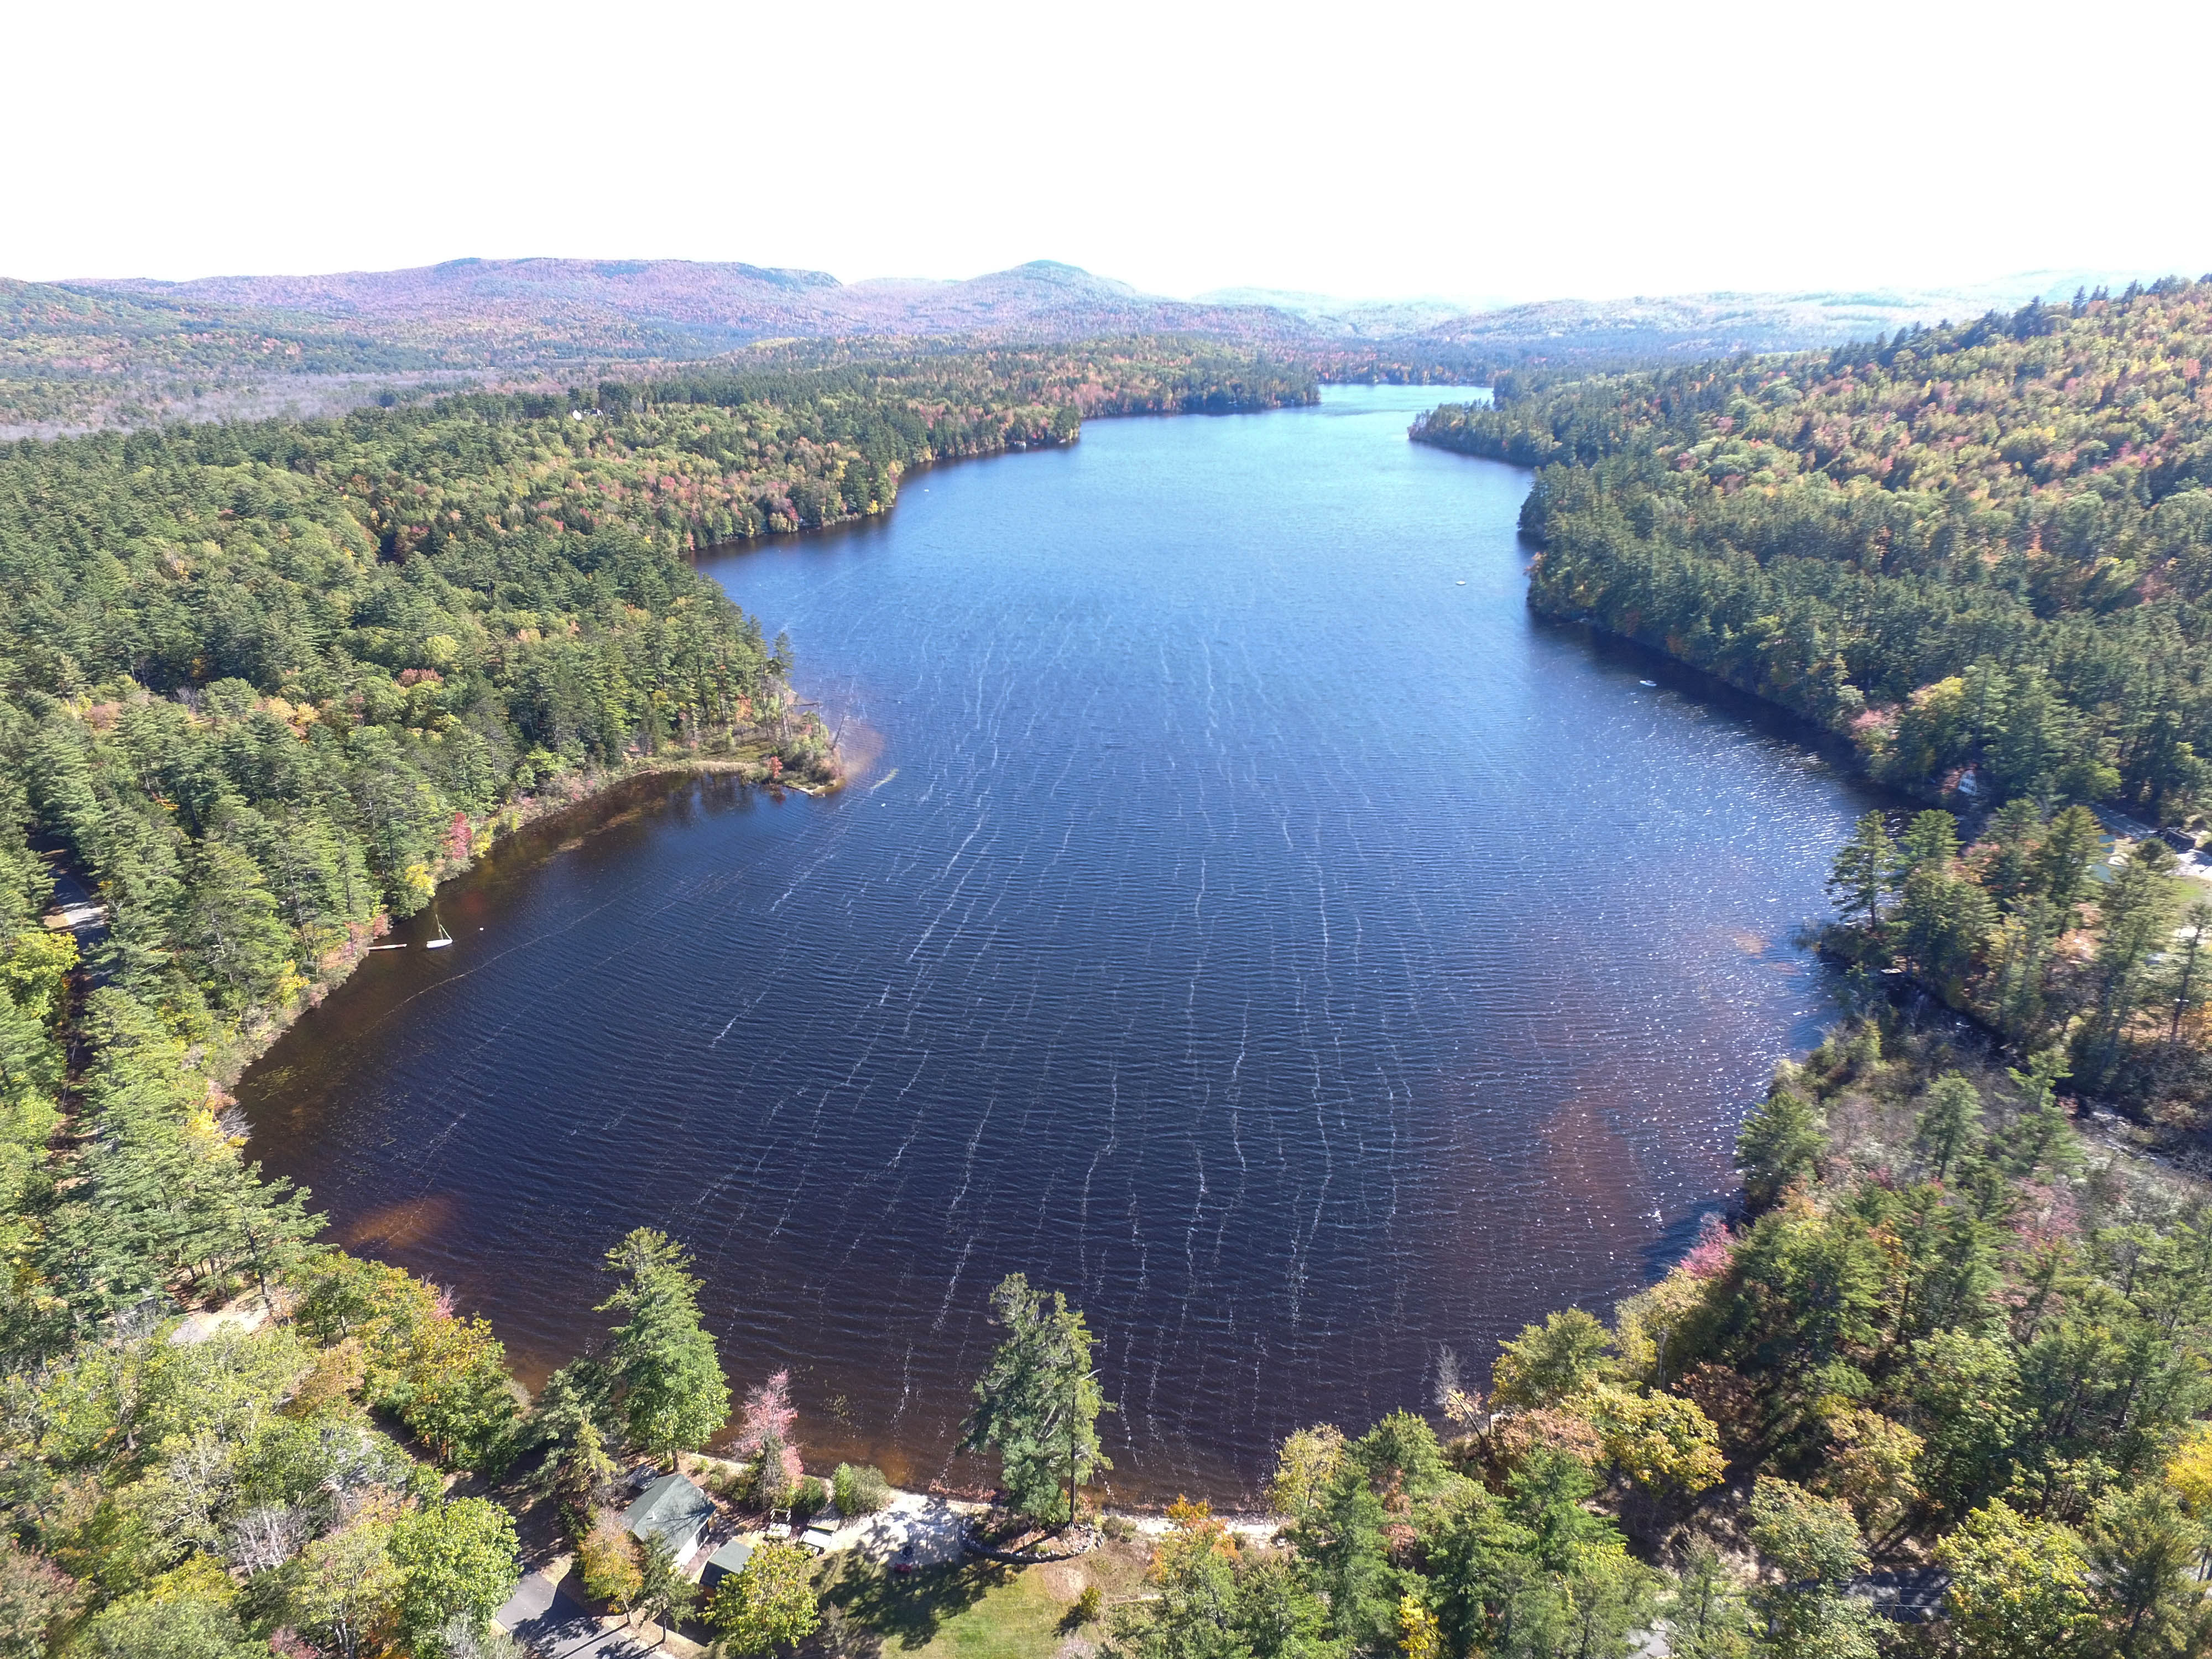 singles in bryant pond Don e bennett is a privately held company in bryant pond, me and is a single location business categorized under taxidermists our records show it was established in 2000 and incorporated.